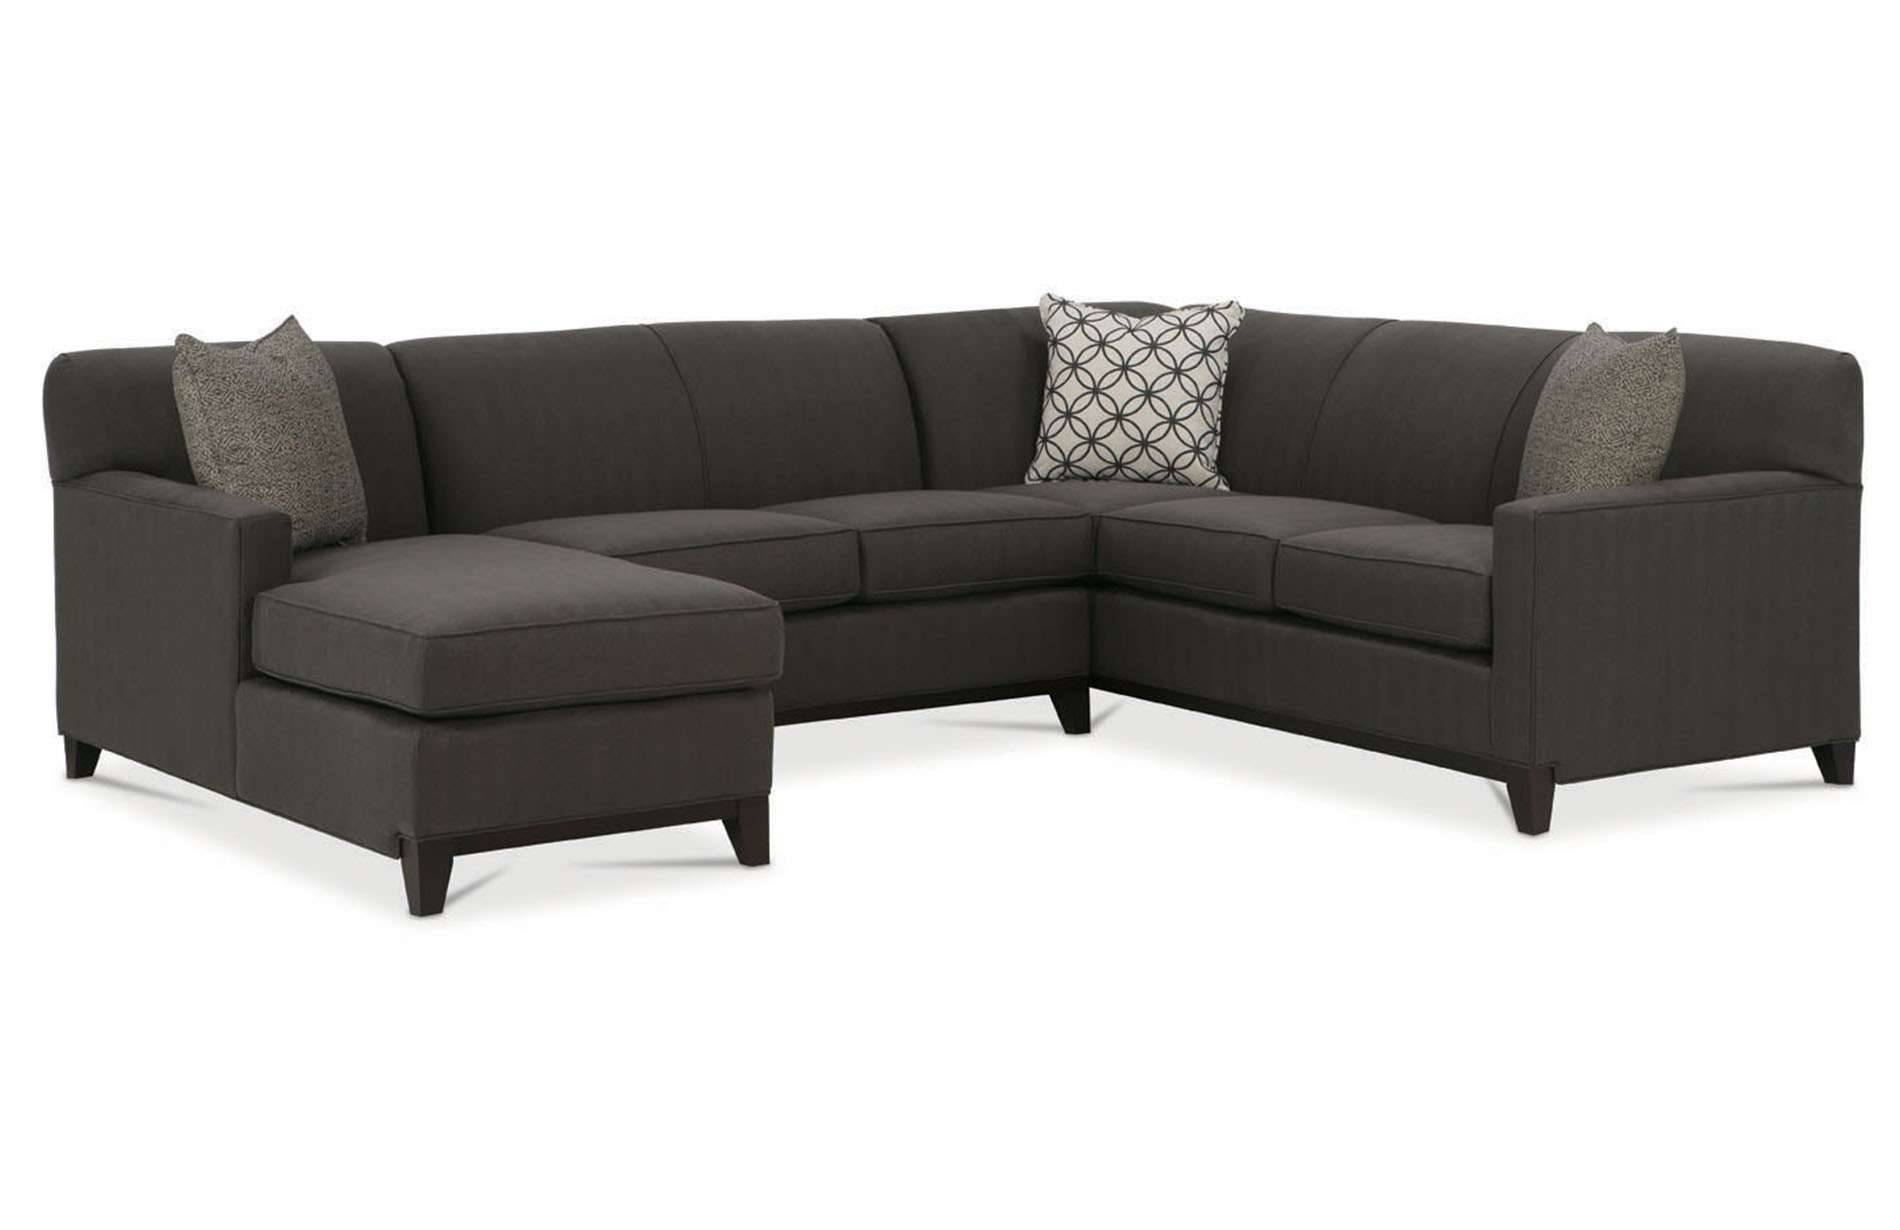 Furniture Home : Outstanding Angled Sofa Sectional With Additional intended for Angled Sofa Sectional (Image 17 of 30)